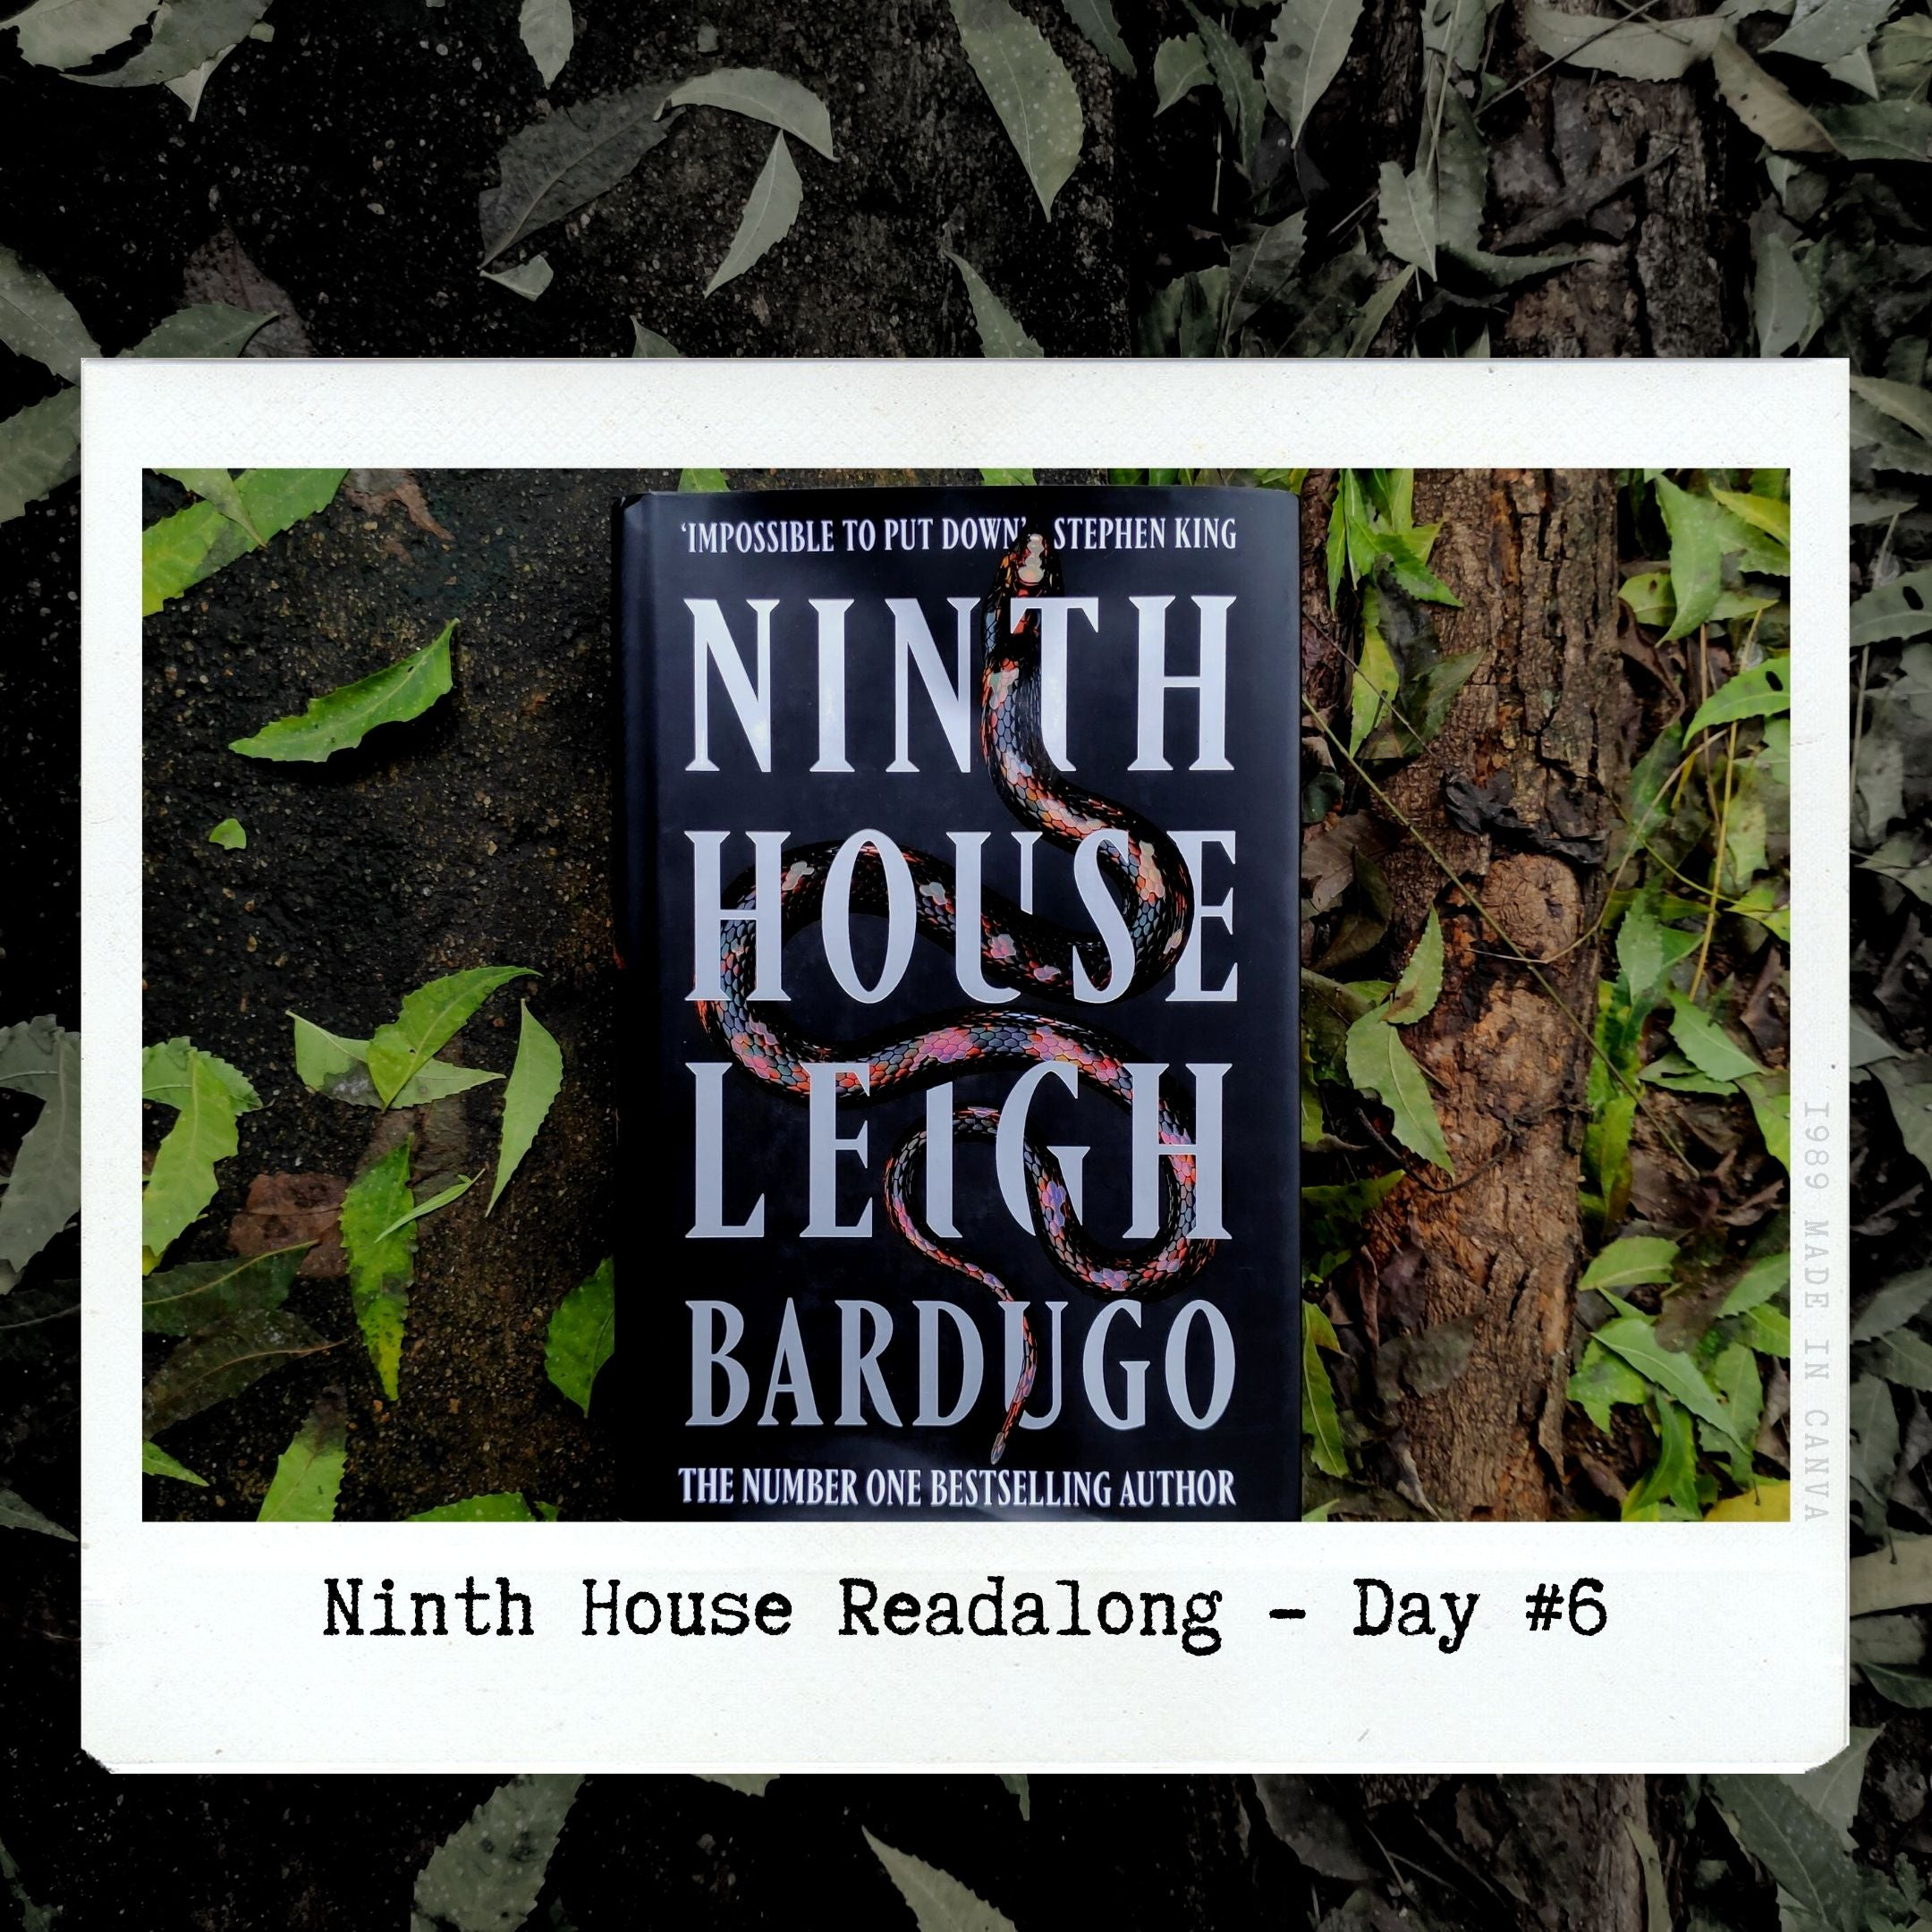 Ninth House Readalong - Day #6